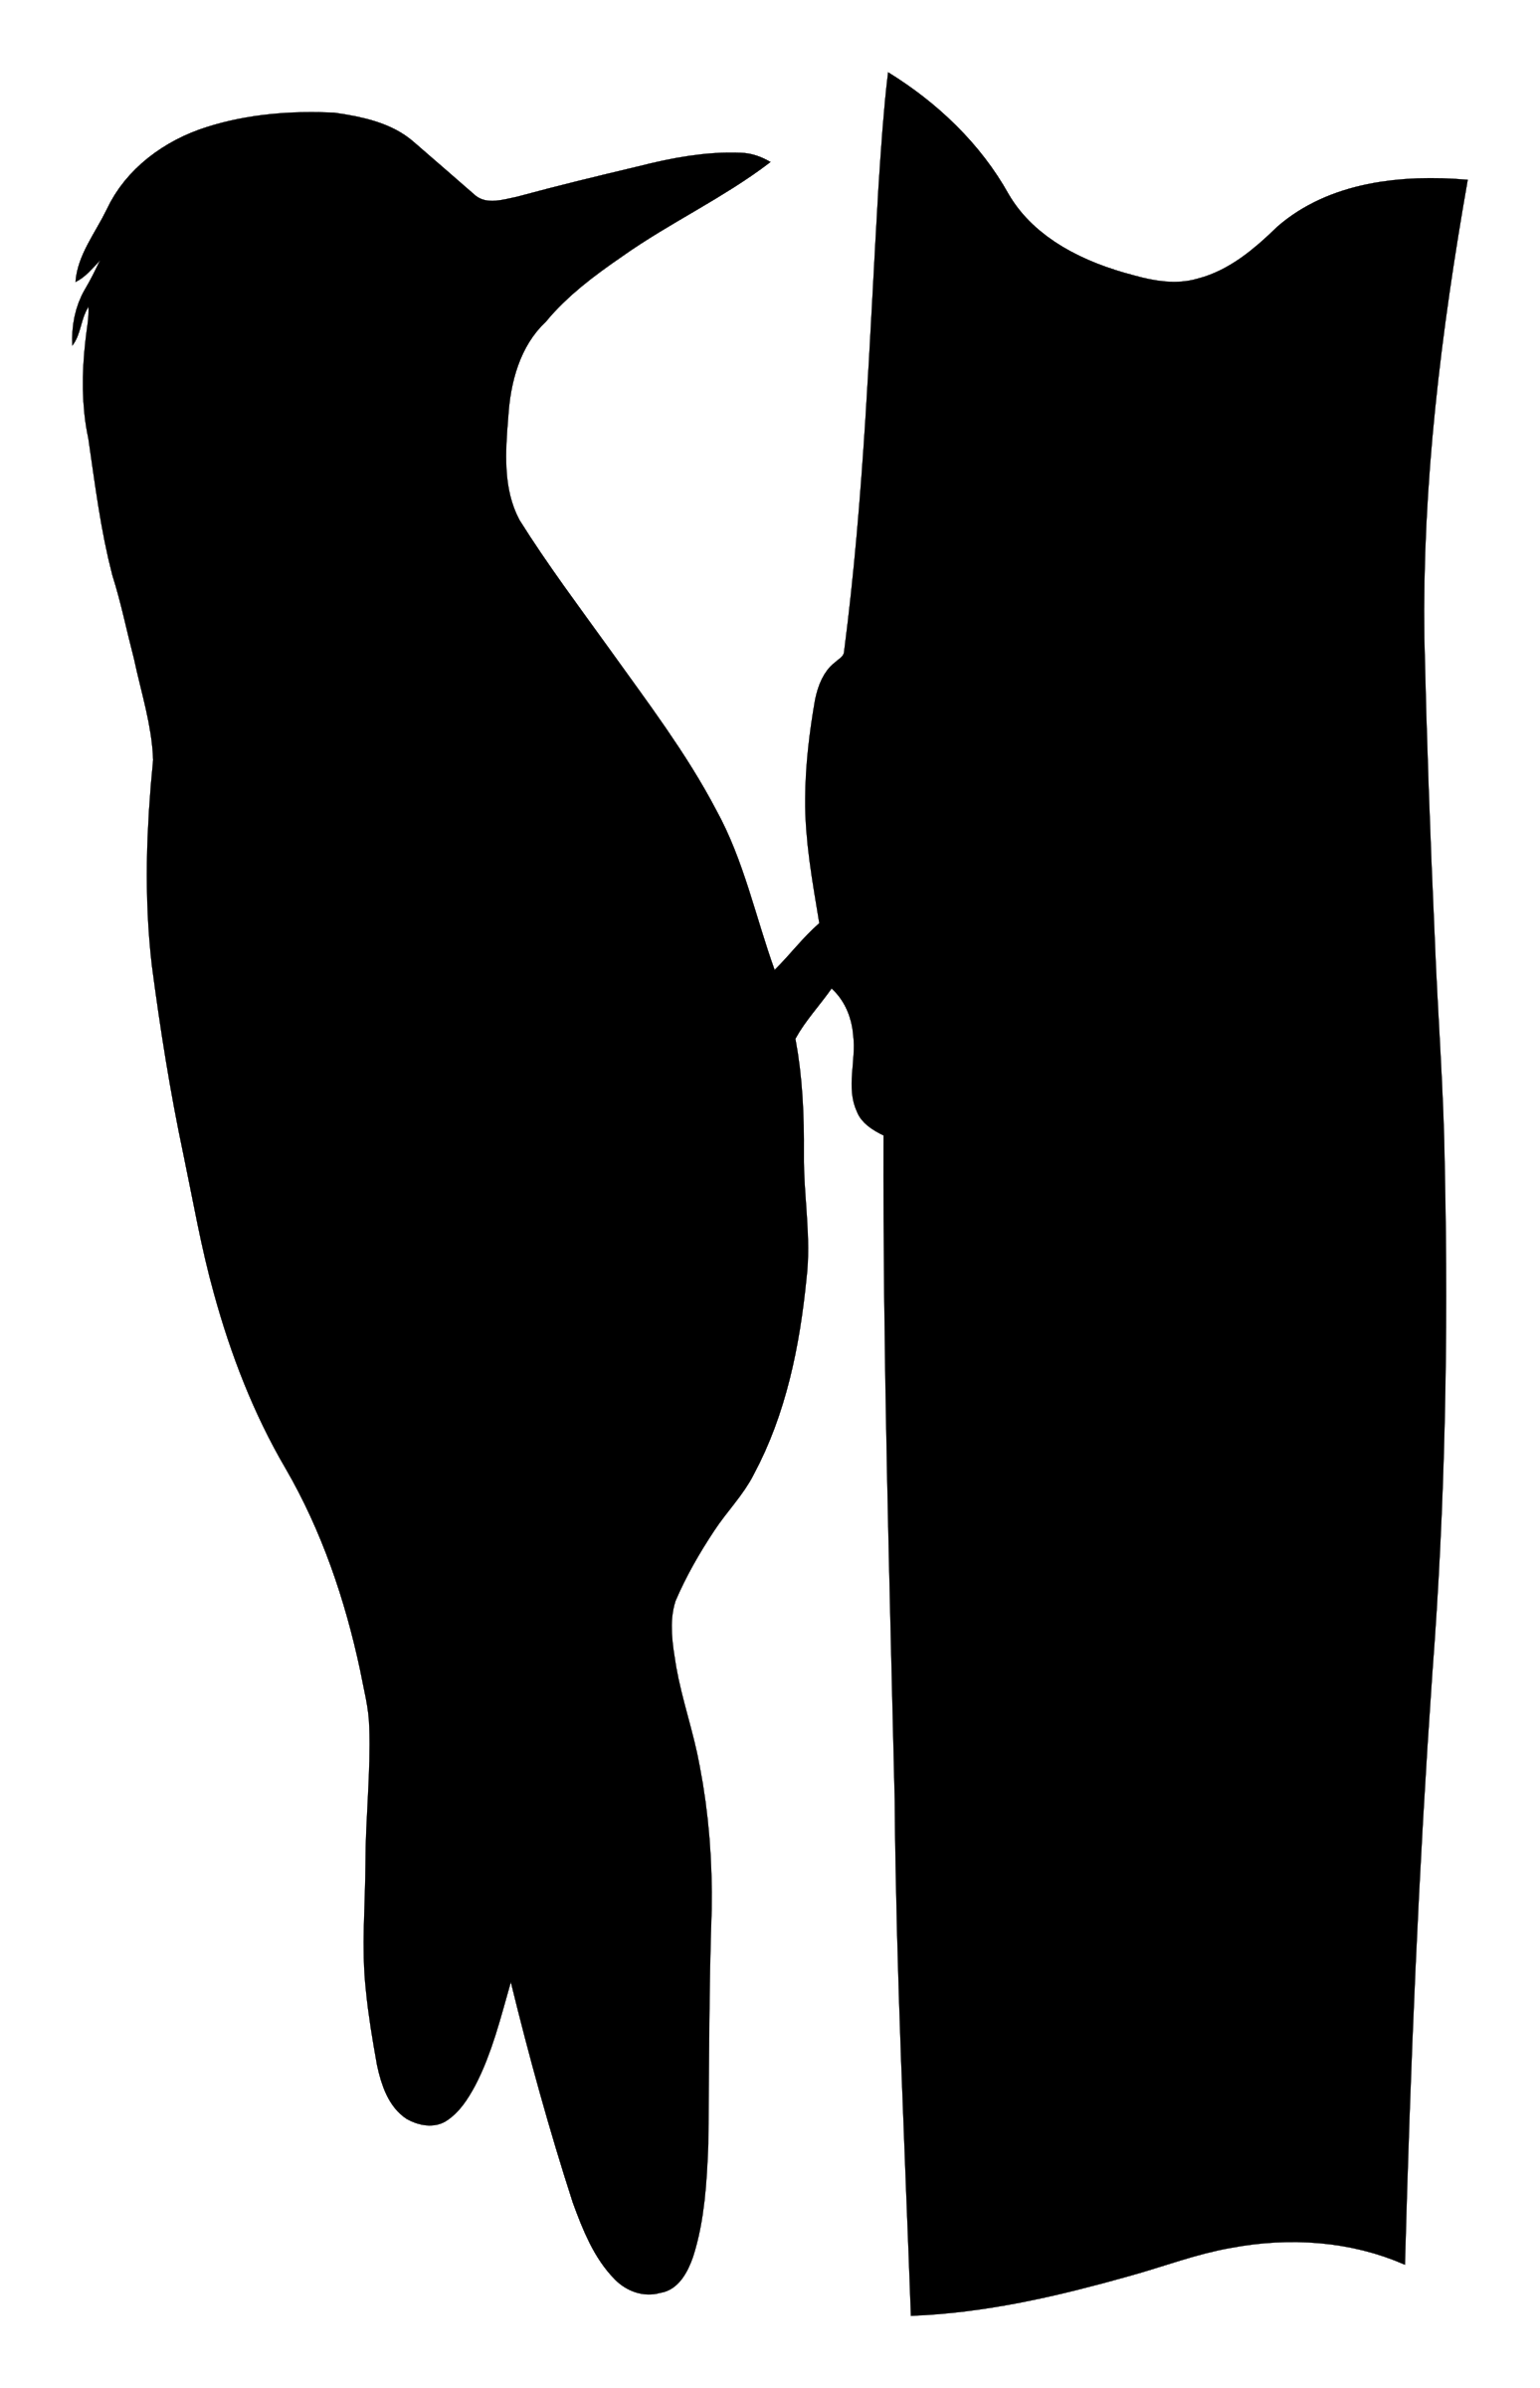 Silhouette - woodpecker by SeriousTux